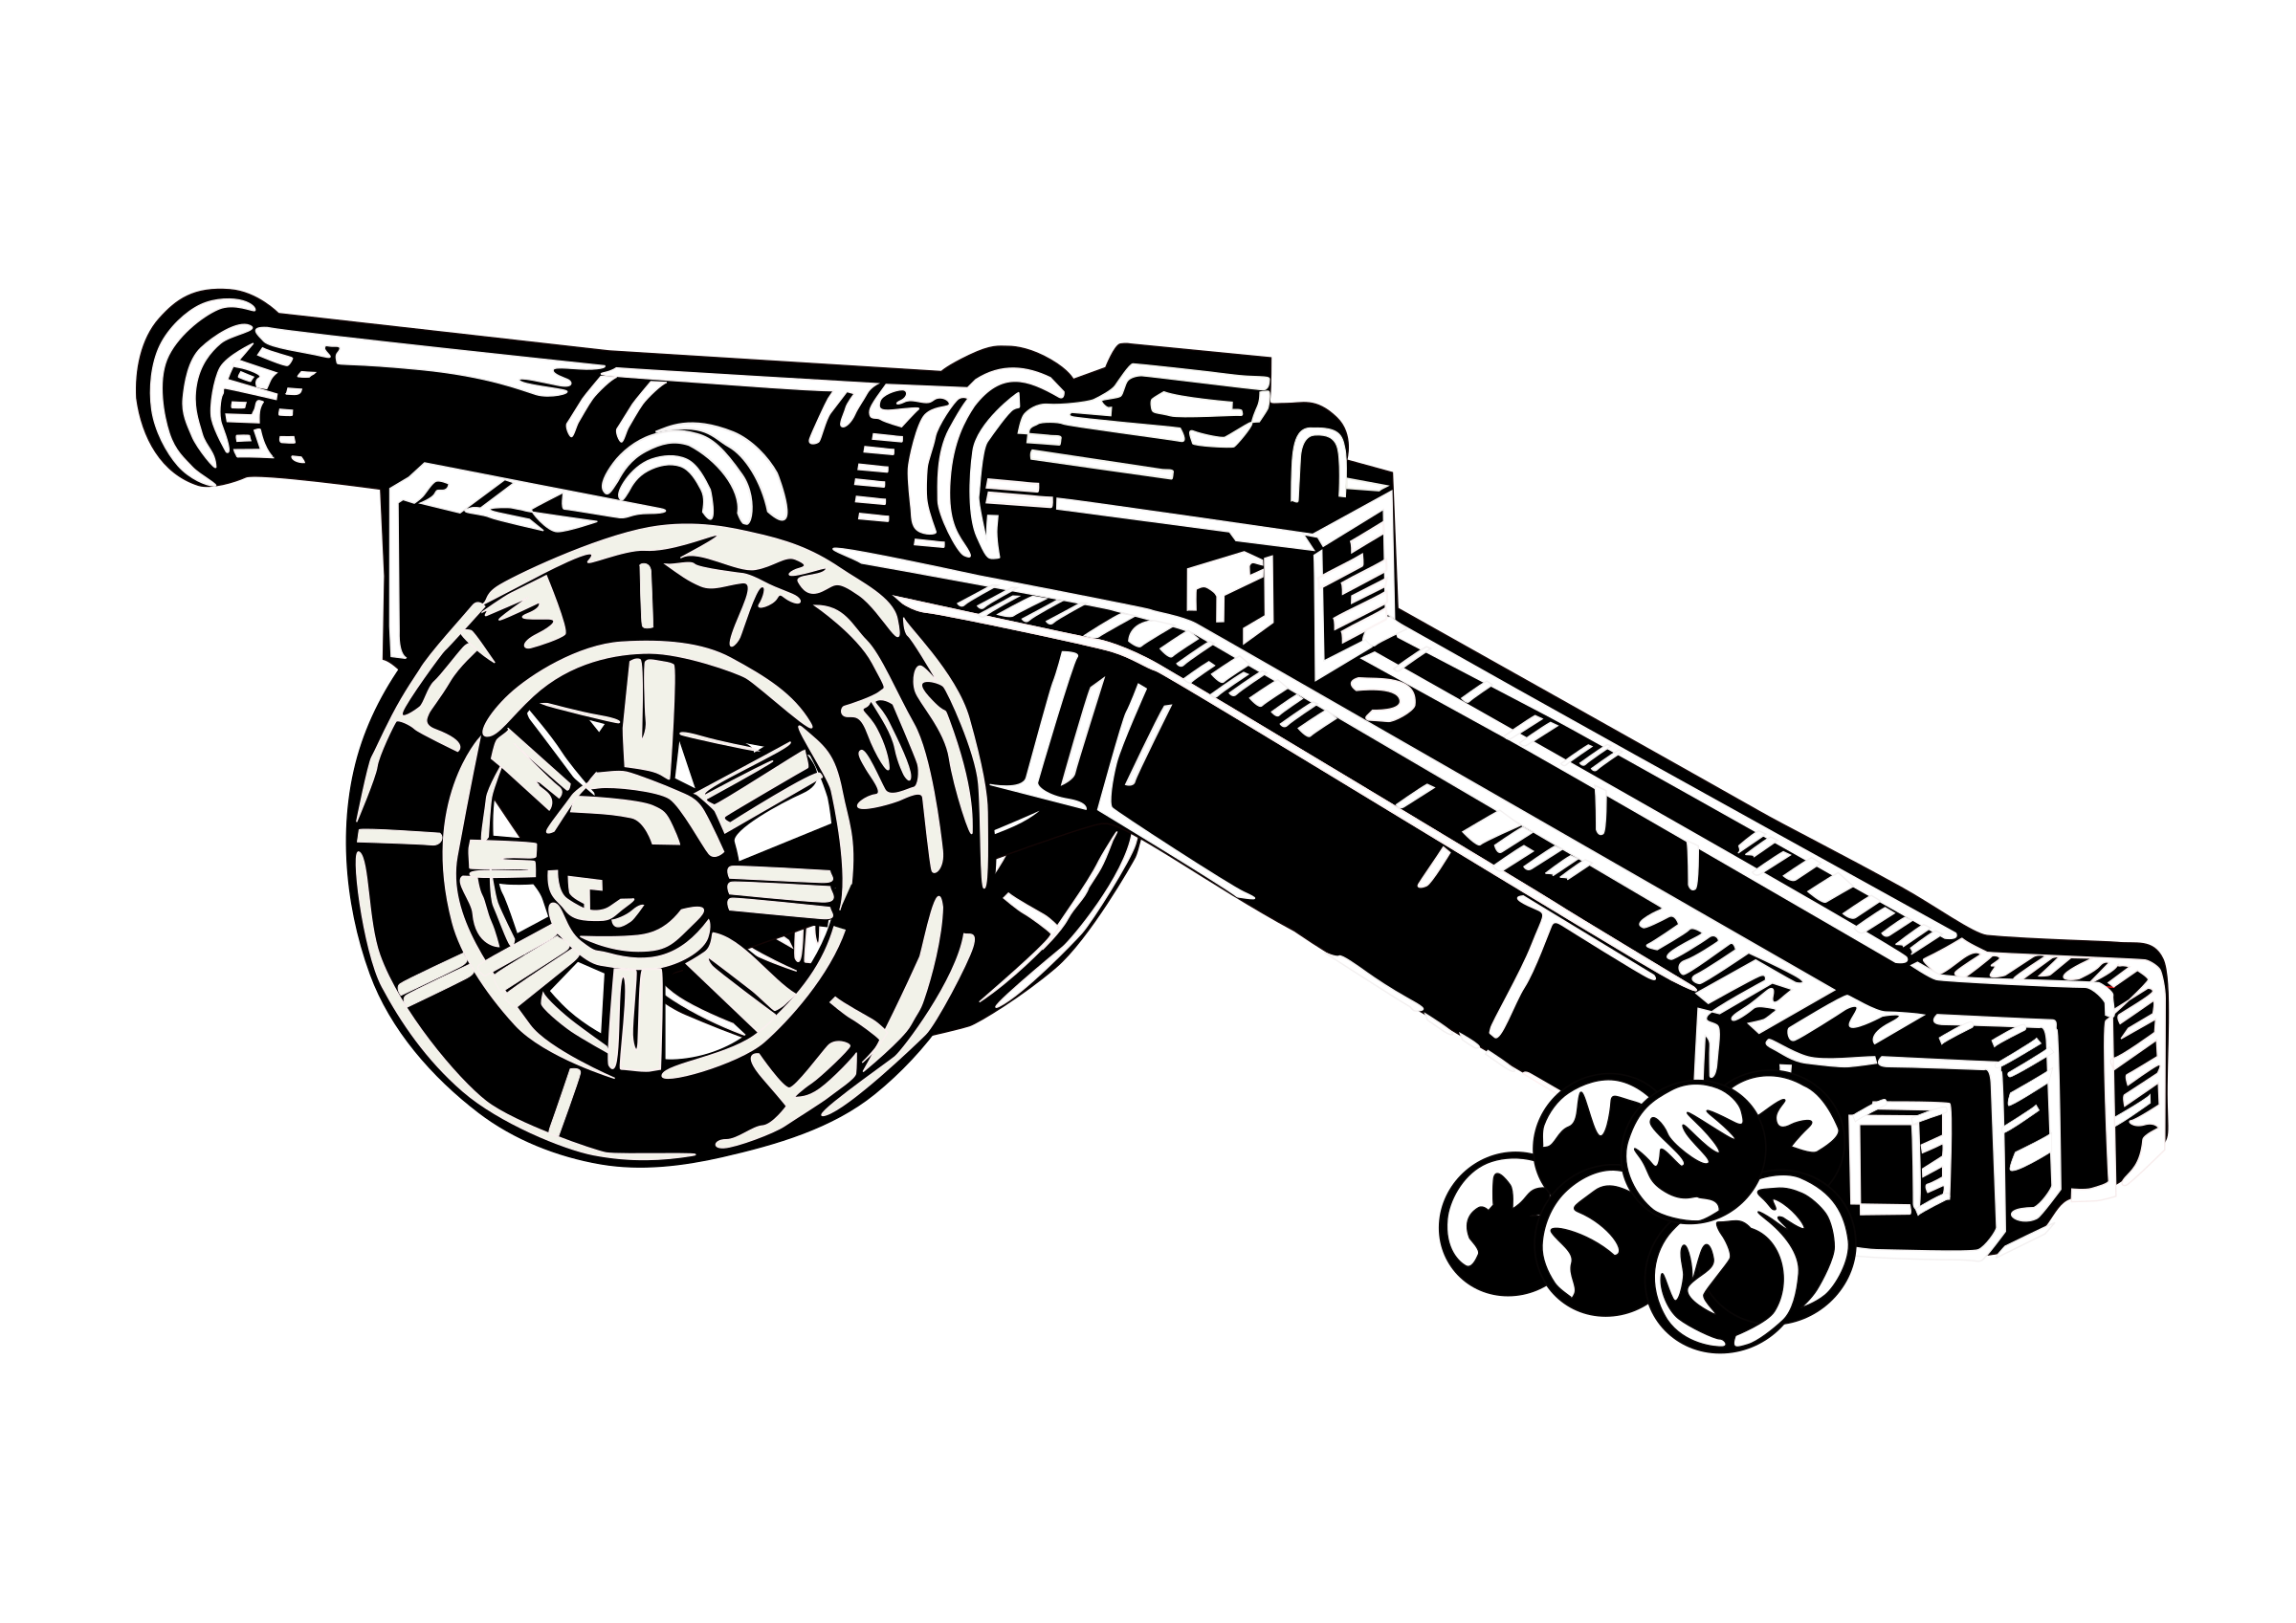 Cannon medieval